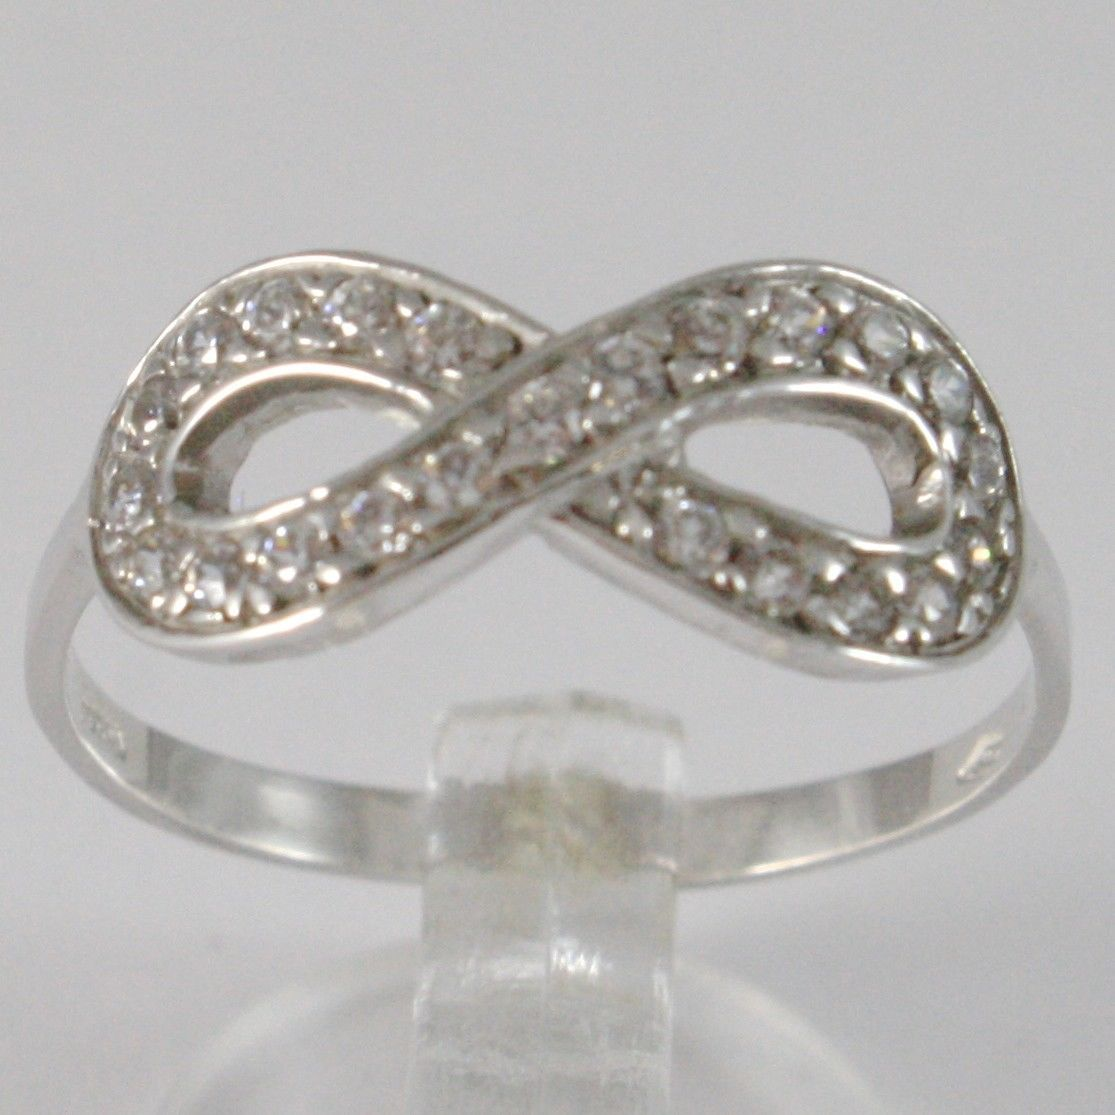 BAGUE EN OR BLANC 750 18K, SYMBOLE INFINI AVEC ZIRCON, MADE IN ITALY